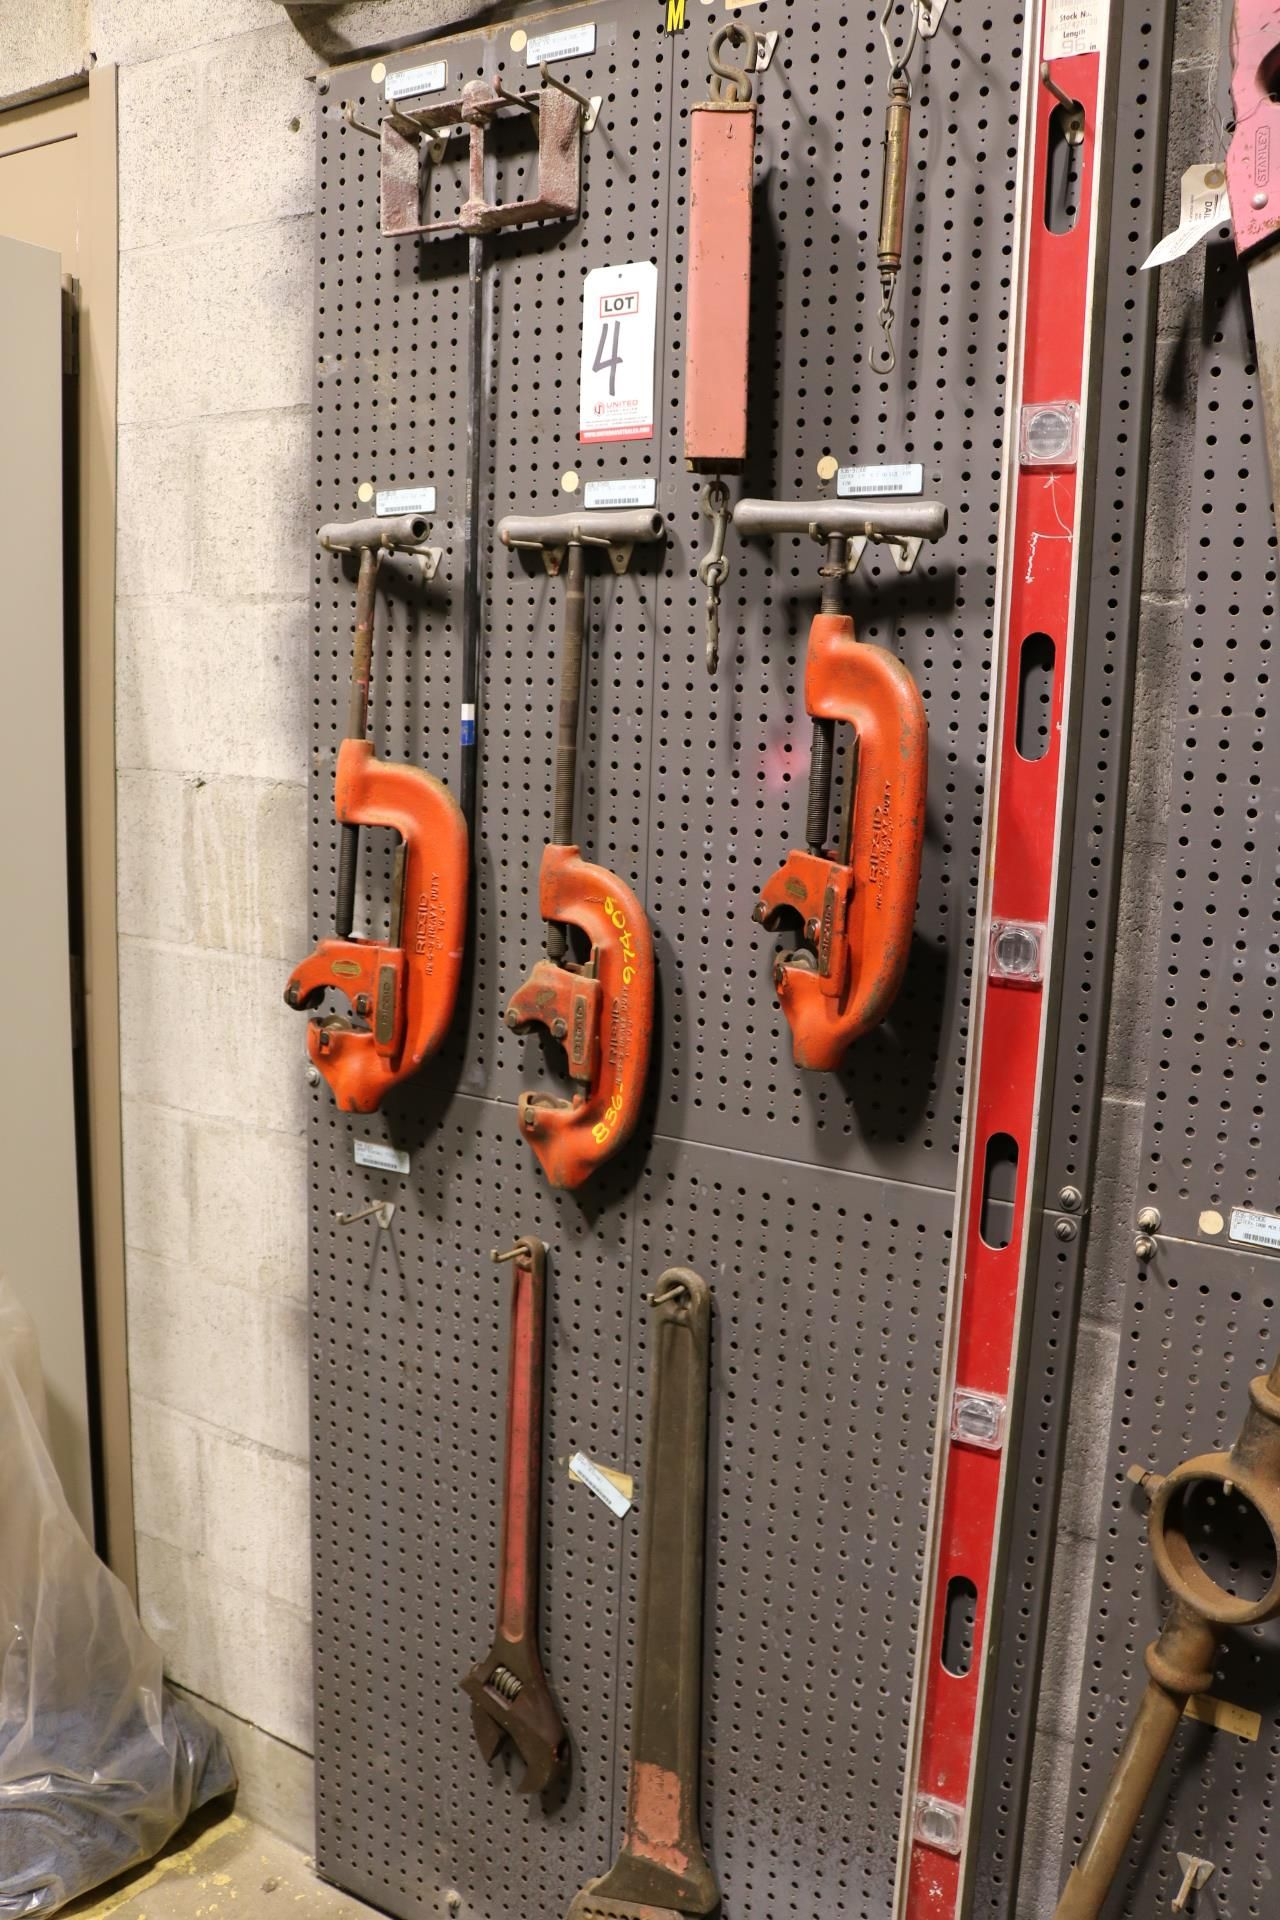 """Lot 4 - LOT - (1) SECTION OF STEEL PEG BOARD, 32"""" X 84"""", W/ CONTENTS: (2) RIDGID NO. 4-S AND (1) NO. 3-S"""